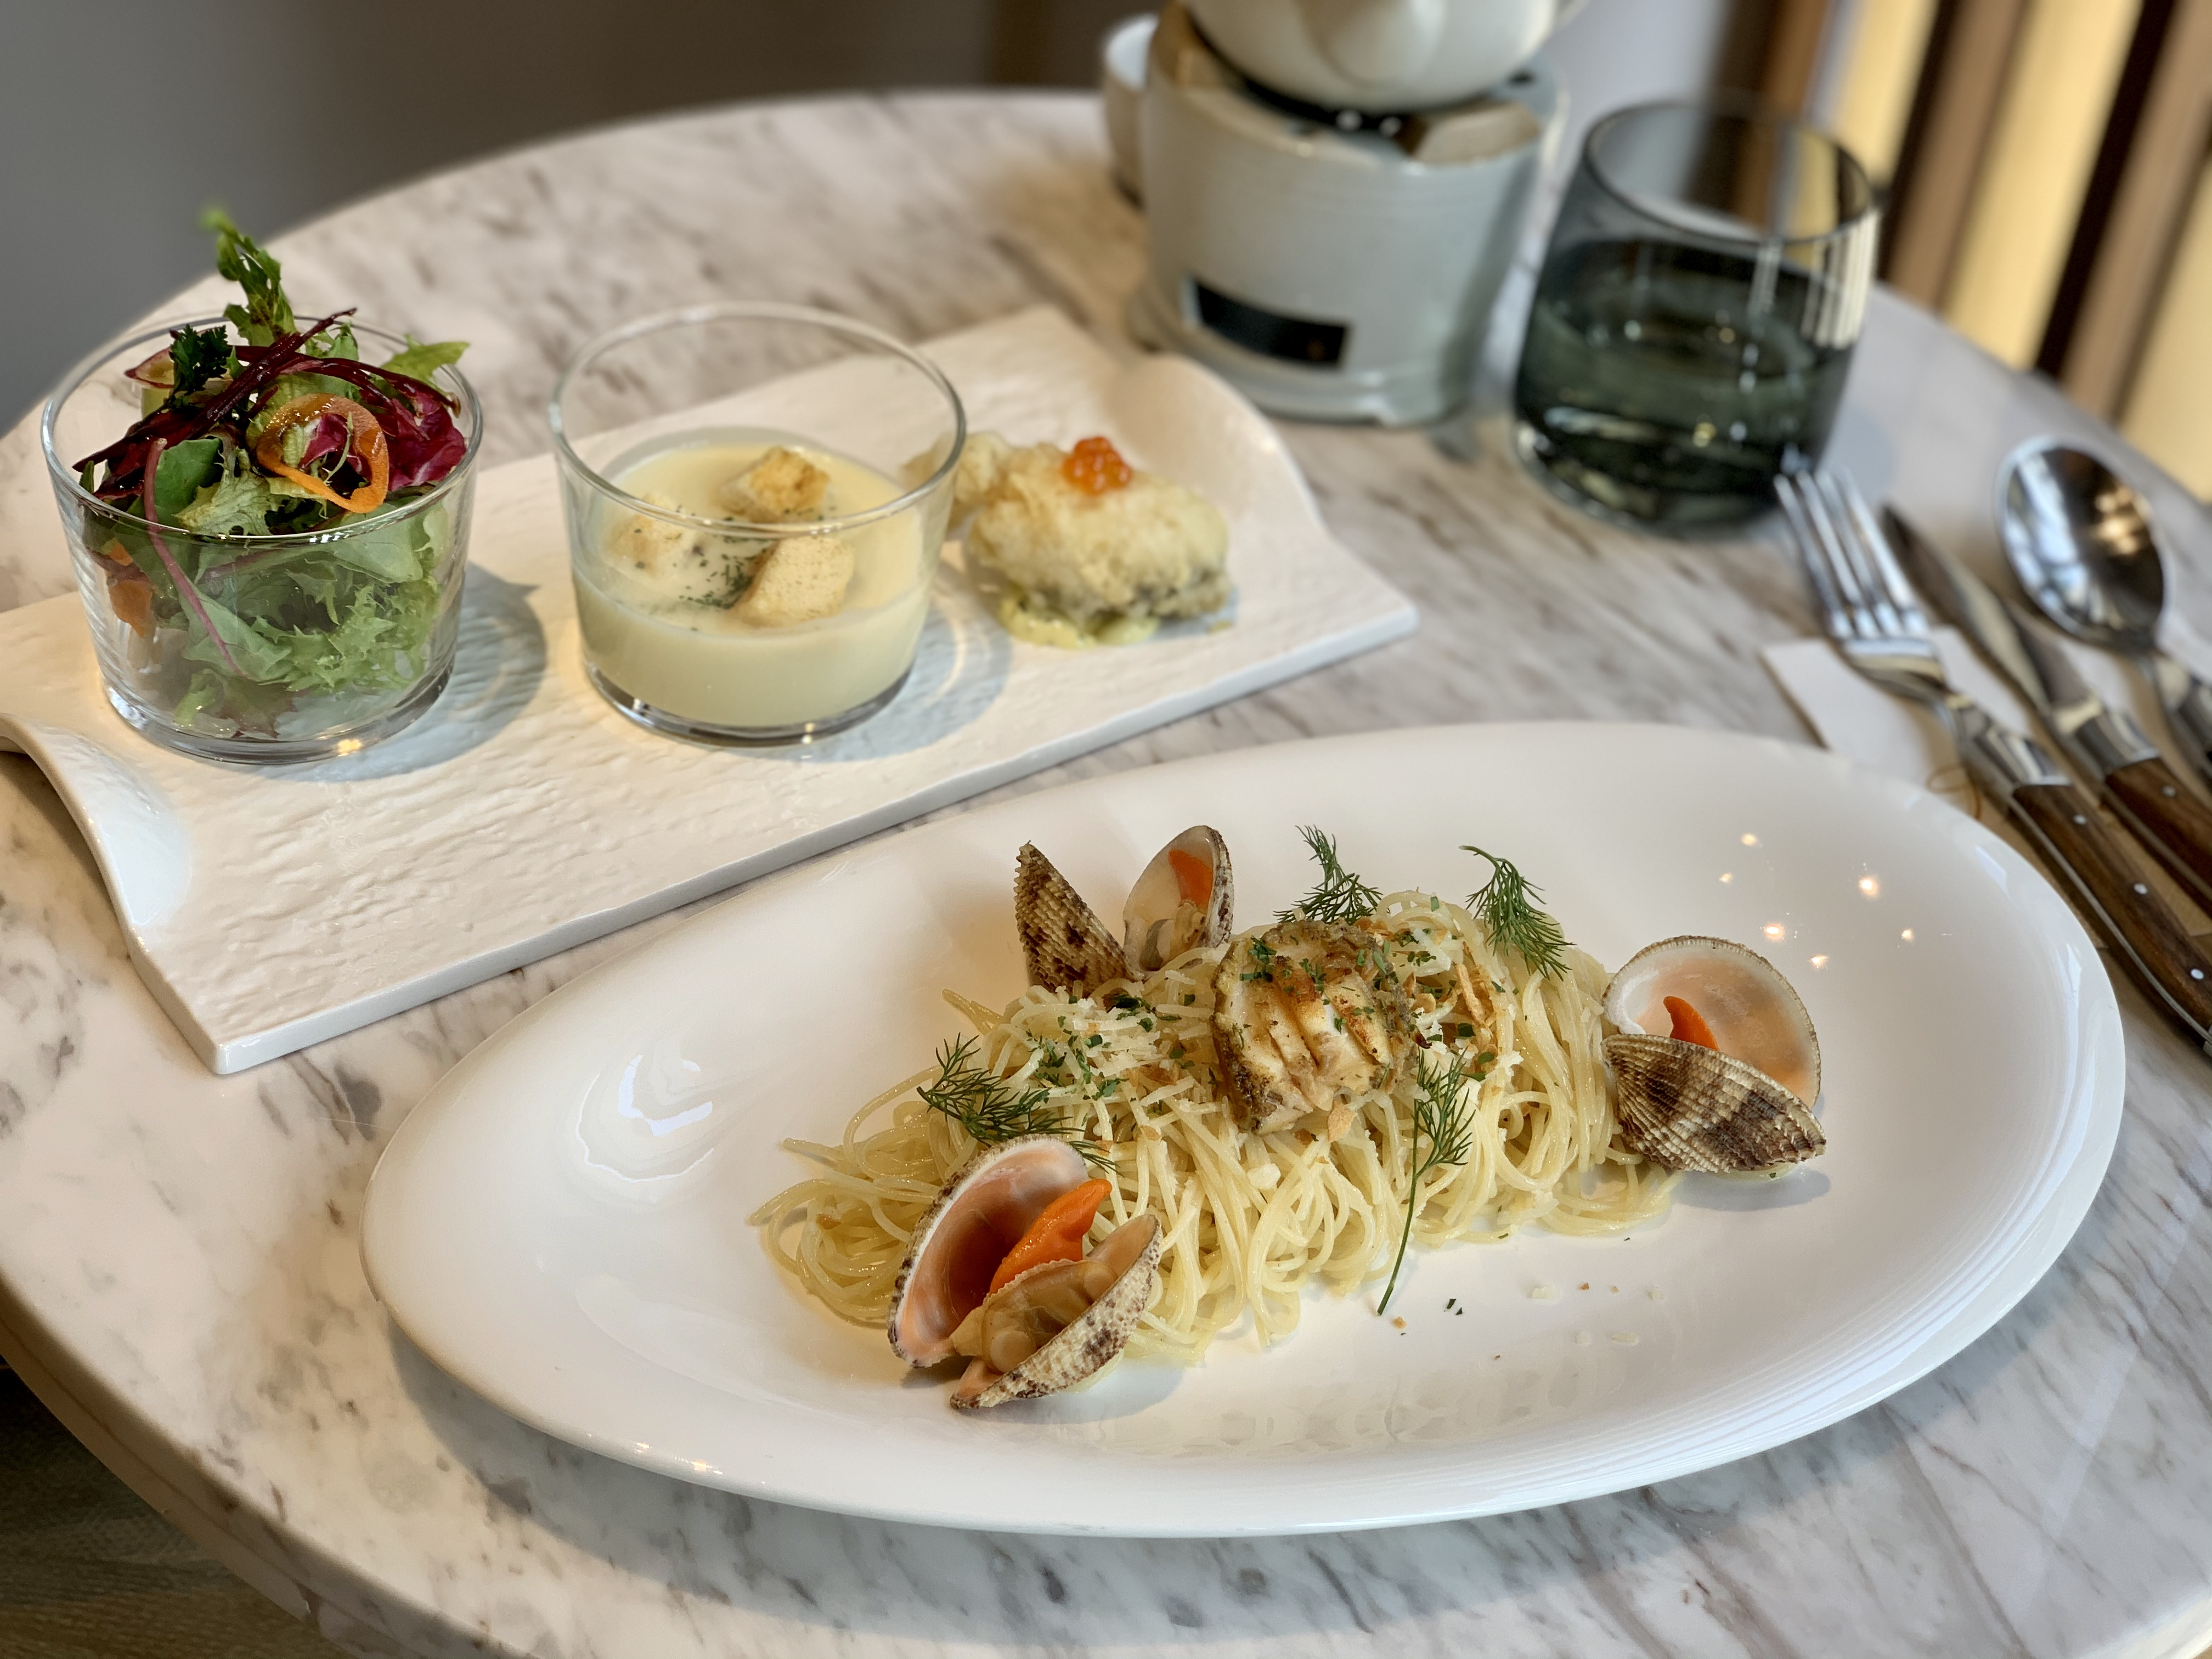 Spaguetti Set Lunch Menu at Padre Restaurant Macau Lifestyle Indoors